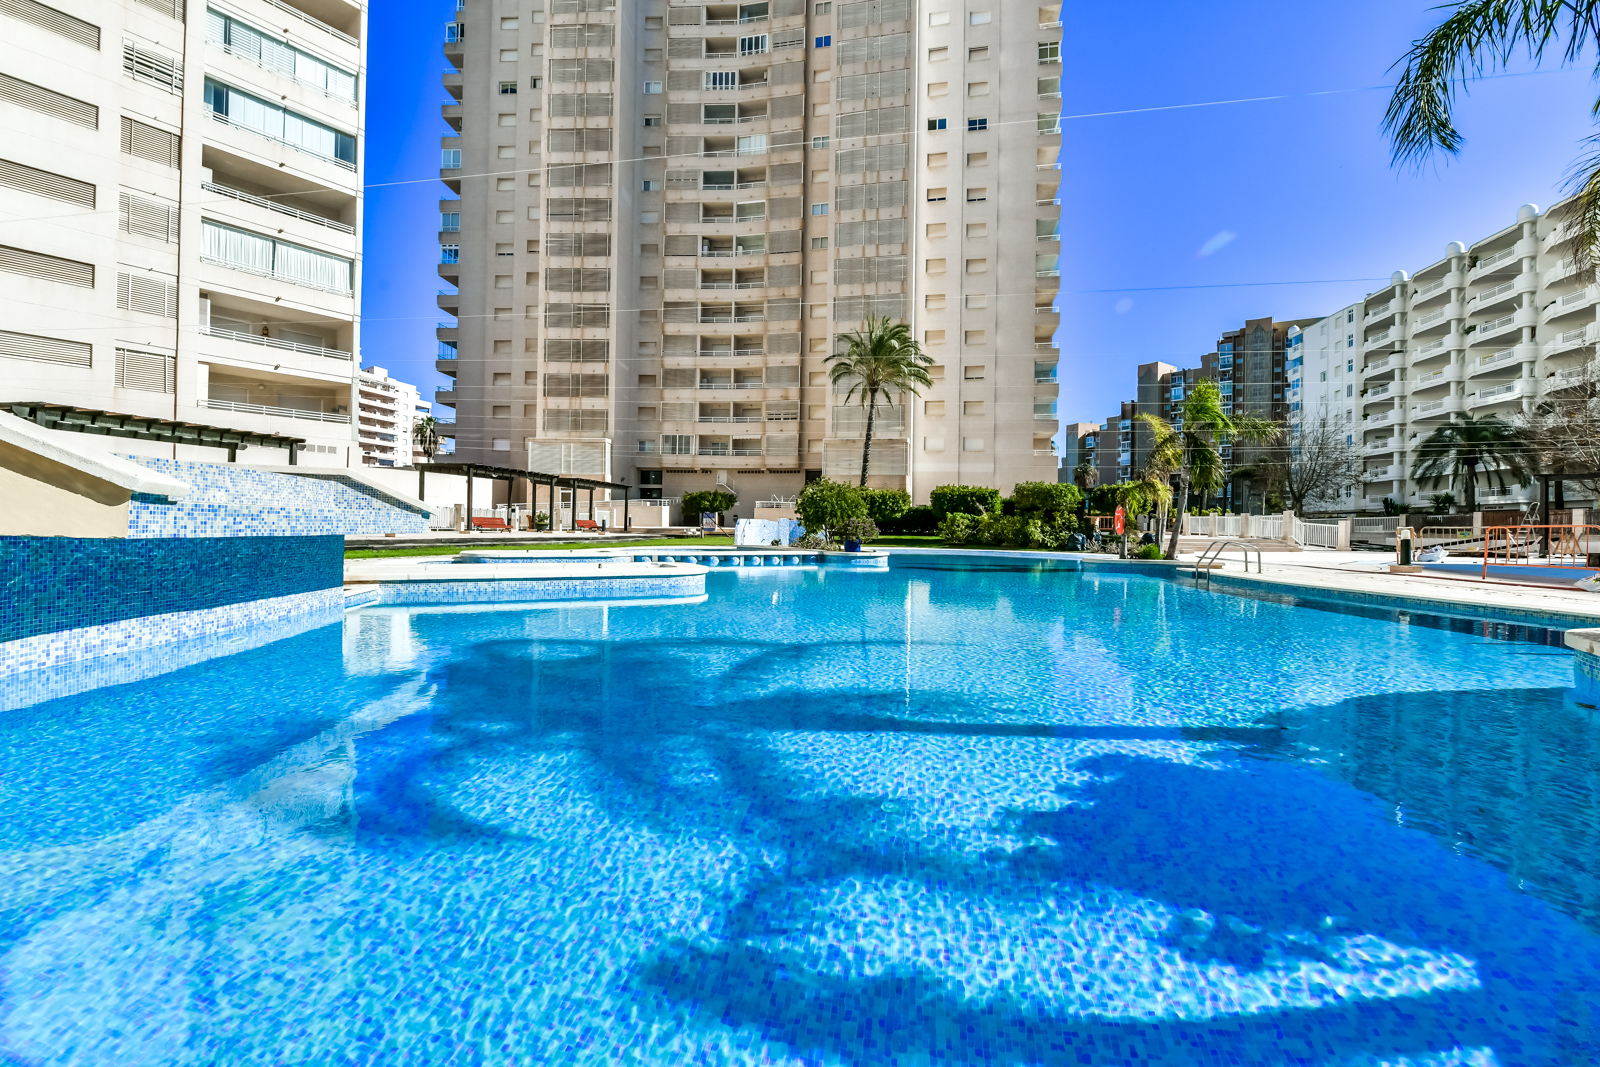 Apartamento Apolo XVII 19 57, Apartment in Calpe, on the Costa Blanca, Spain  with communal pool for 4 persons.....